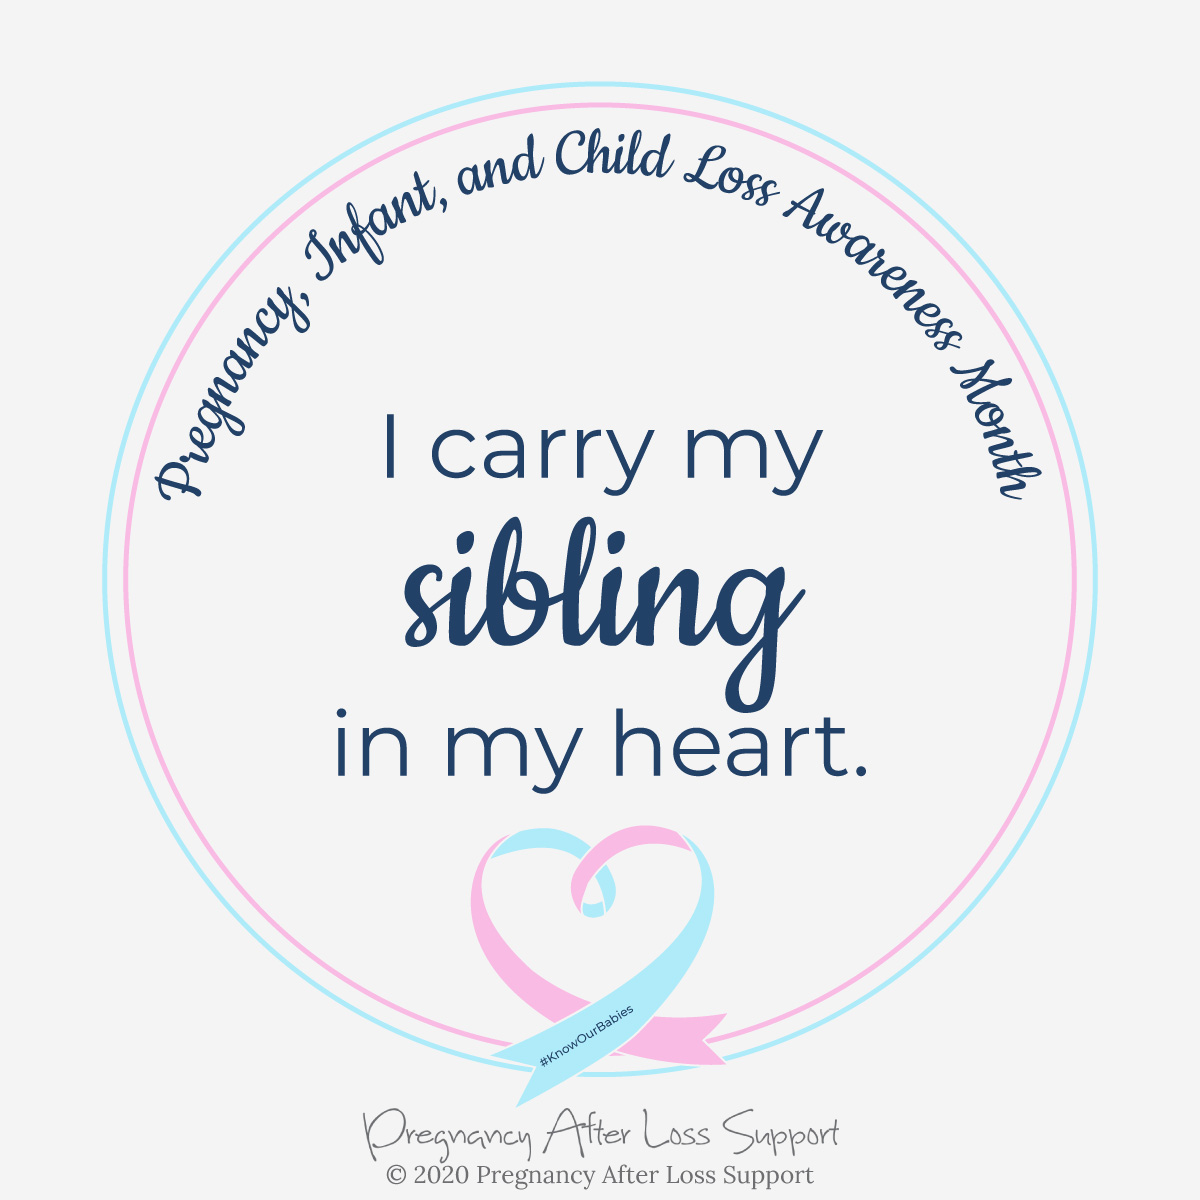 I carry my sibling in my heart - Pregnancy, Infant, and Child Loss Awareness Month